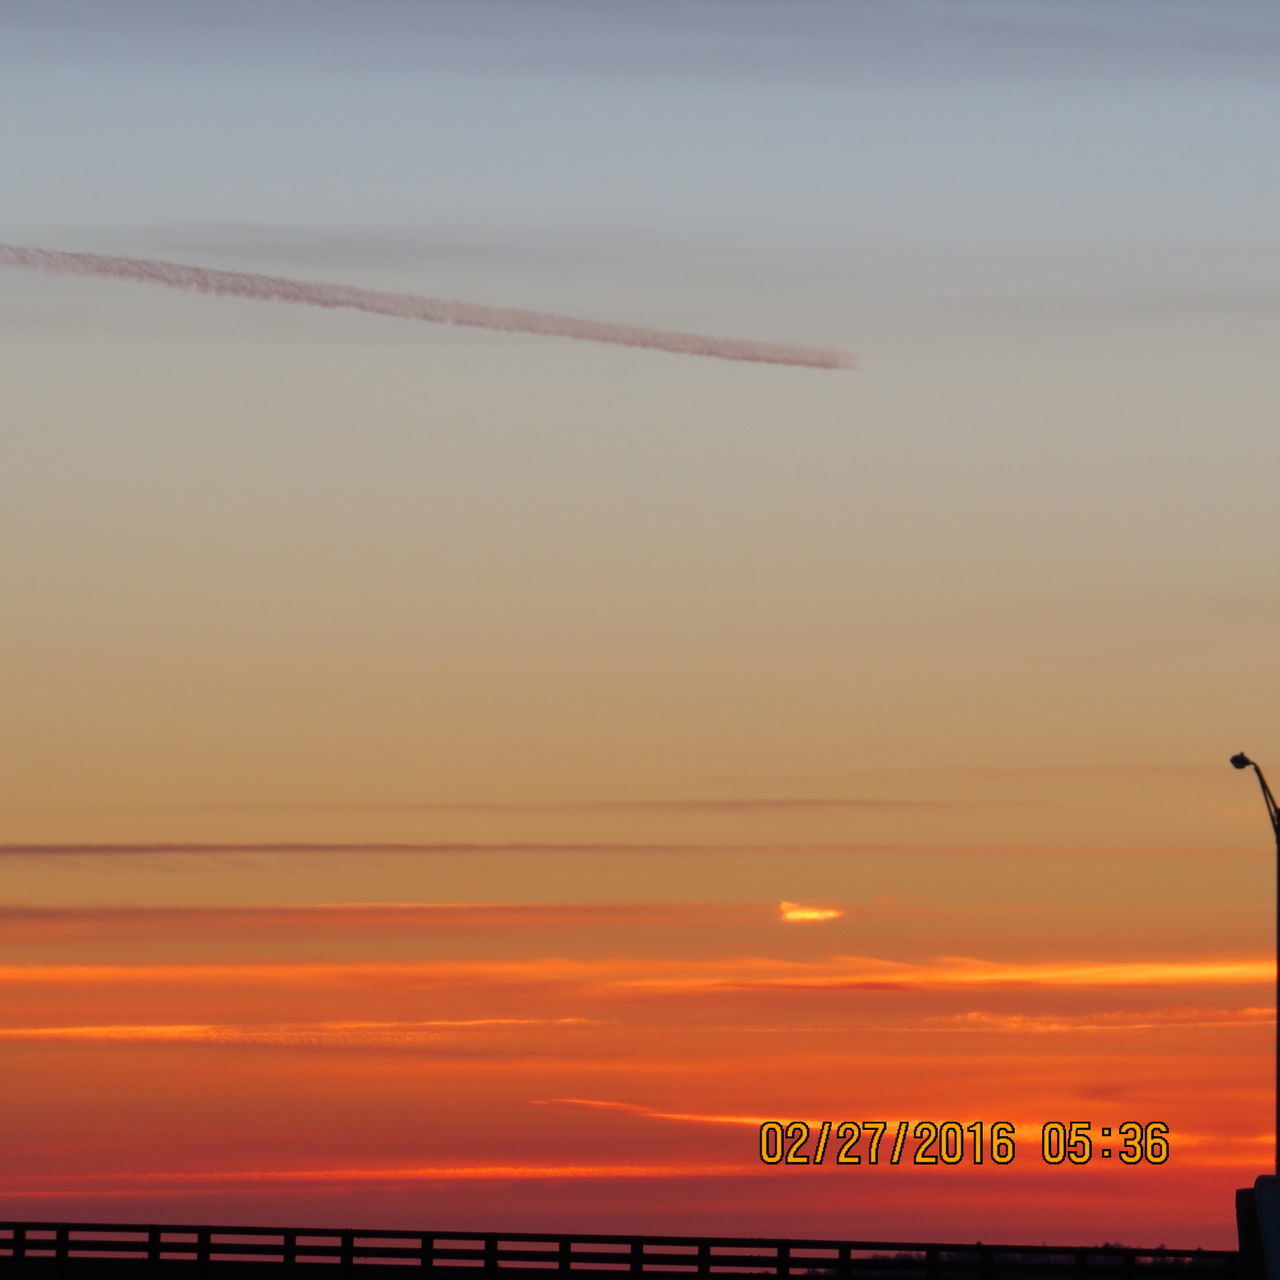 sunset, sky, transportation, communication, air vehicle, airplane, scenics, sea, flying, no people, beauty in nature, outdoors, nature, water, vapor trail, day